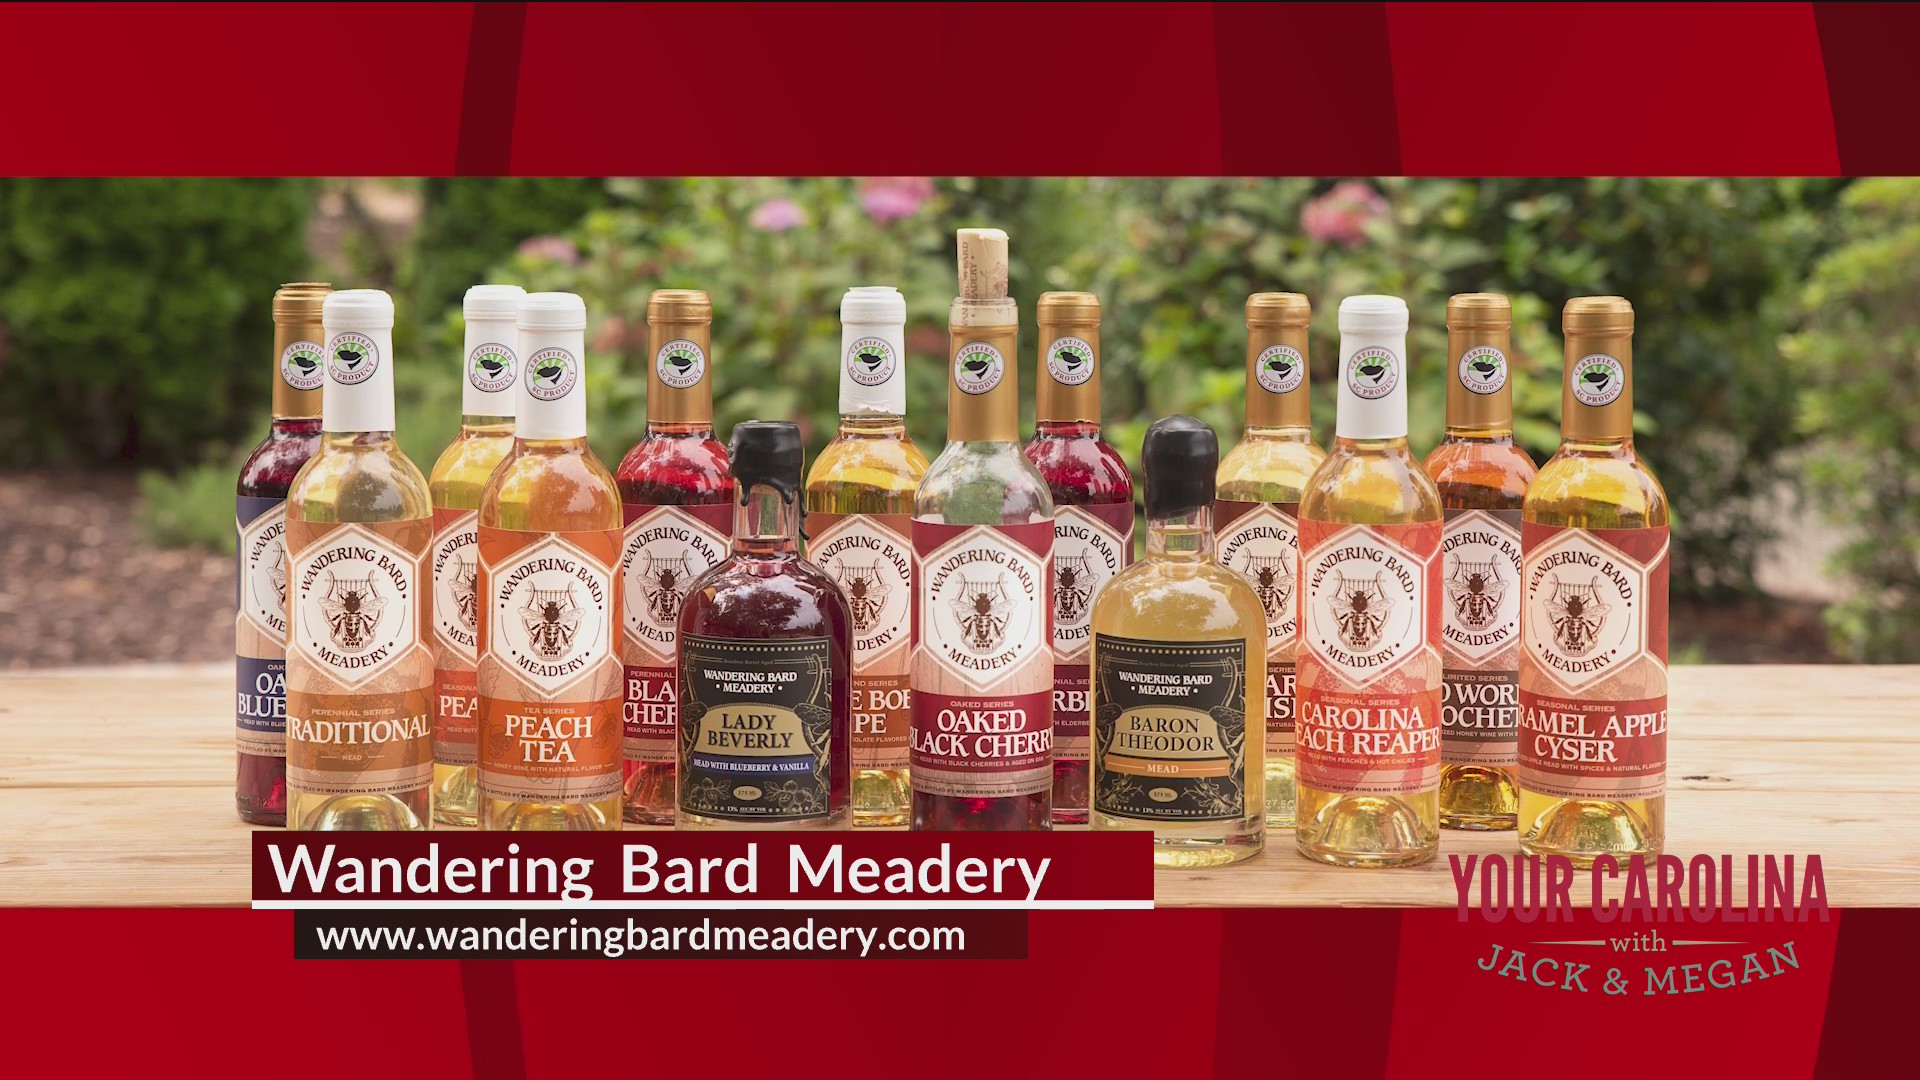 Mead Made in the Upstate - Wandering Bard Meadery